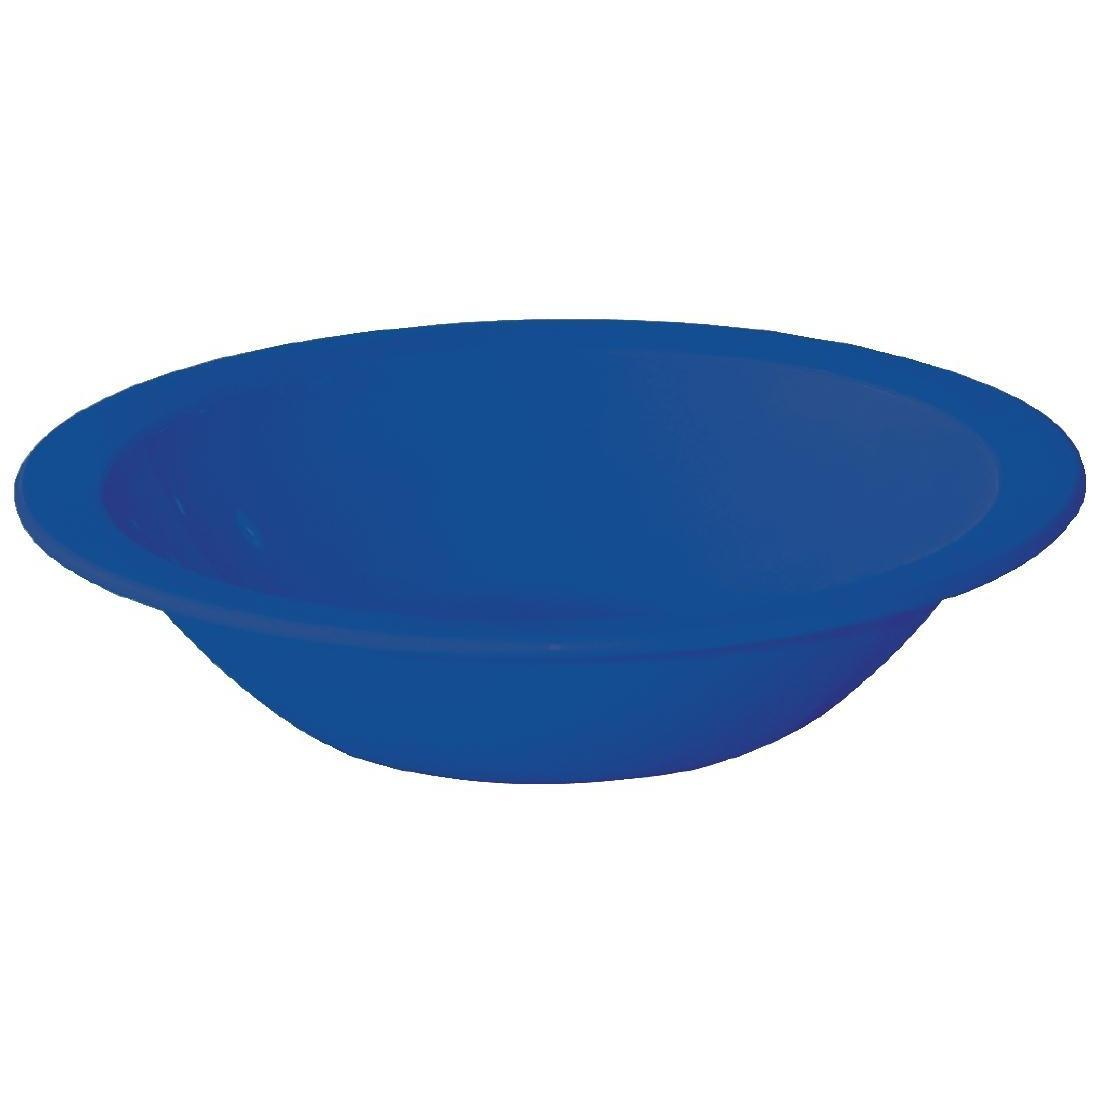 Kristallon Polycarbonate Bowls Blue 172mm - Case 12 - CB773